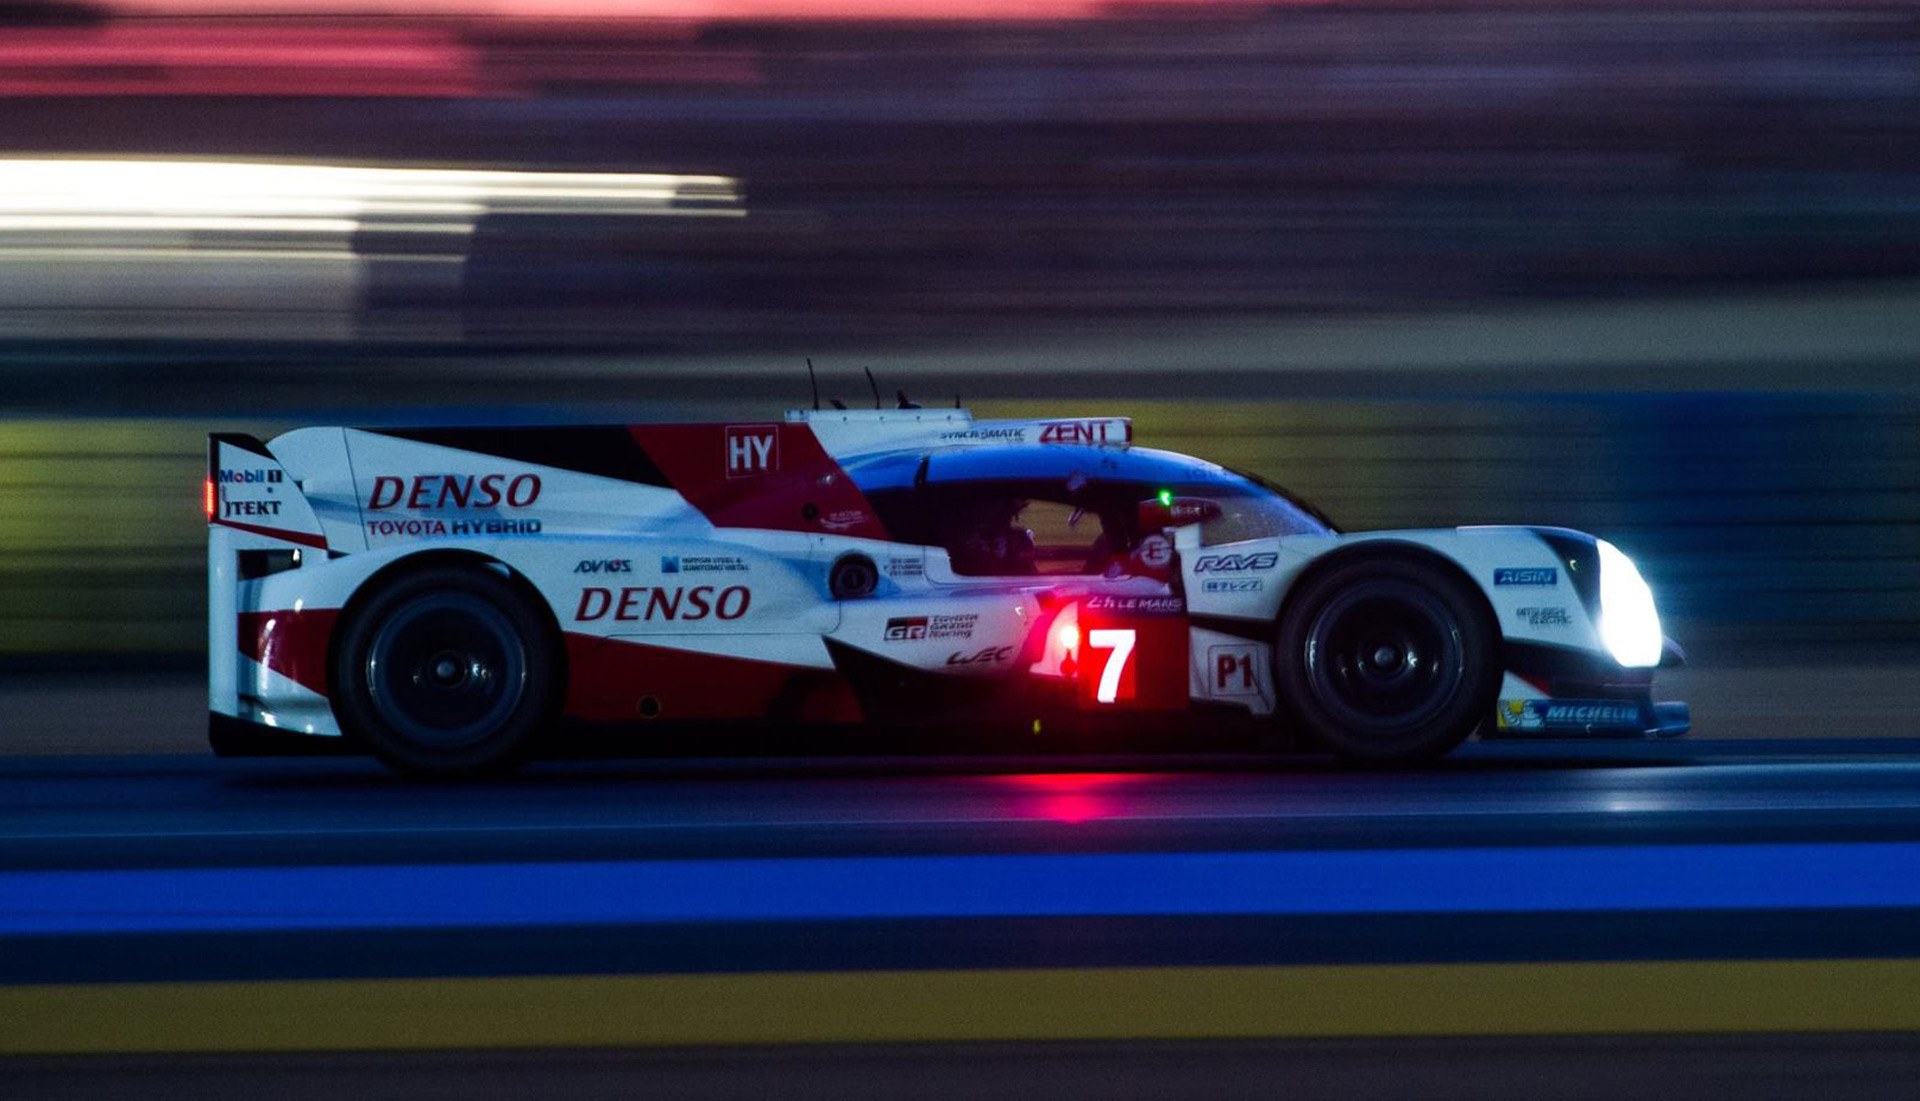 Toyota S Kobayashi Secures 2017 Le Mans Pole With Record Lap